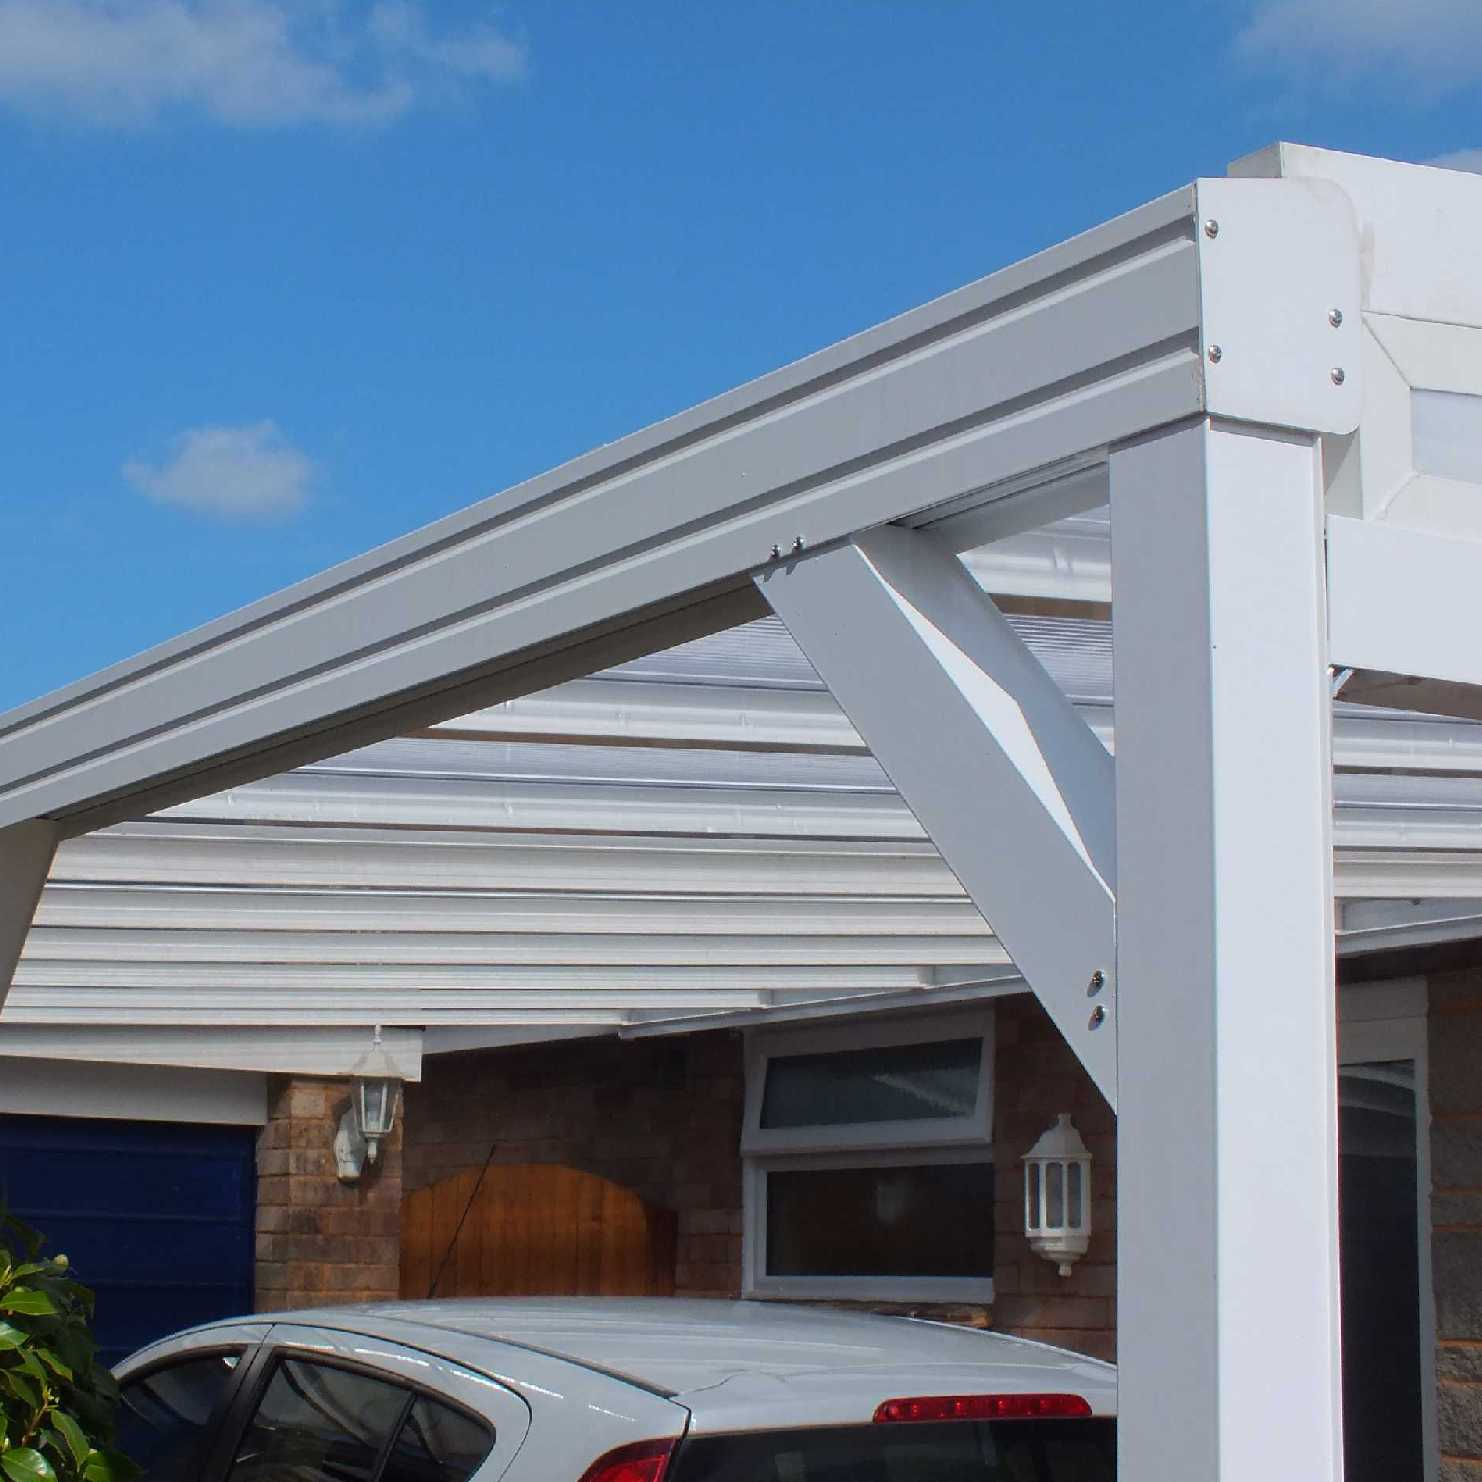 Great deals on Omega Smart White Lean-To Canopy with 16mm Polycarbonate Glazing - 8.4m (W) x 4.0m (P), (4) Supporting Posts